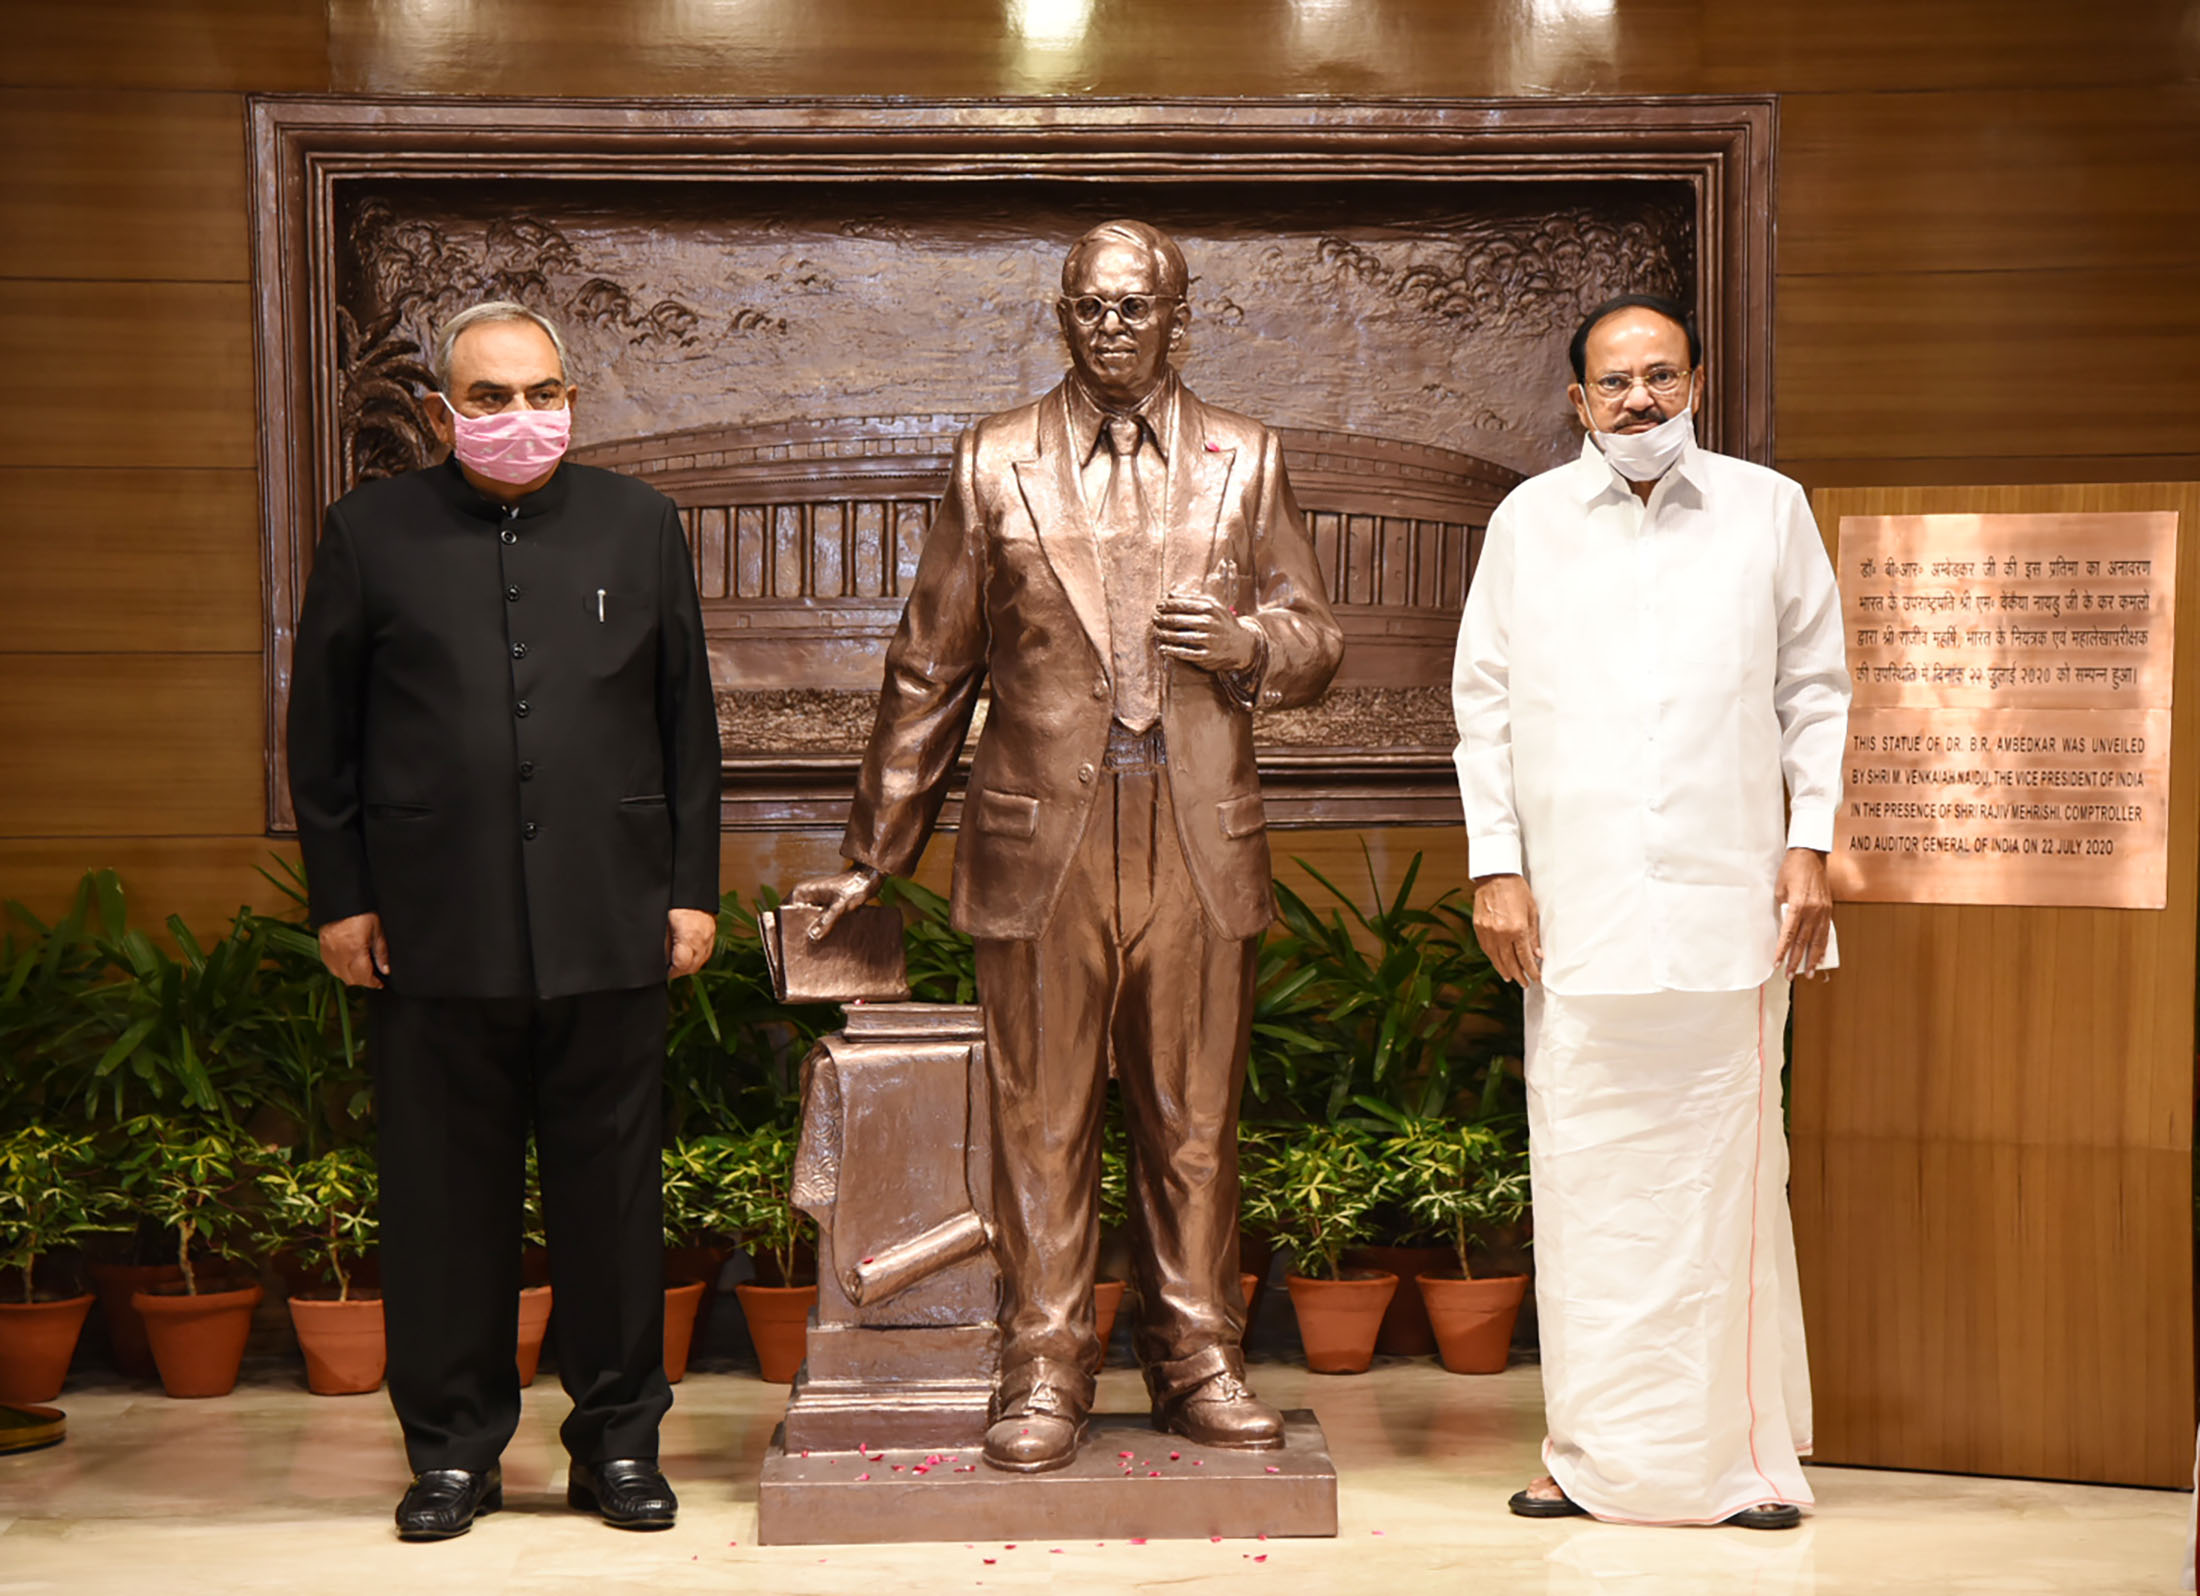 Unveils the statue of Baba Saheb Dr. B R Ambedkar at premises of office of the Comptroller and Auditor General (CAG)